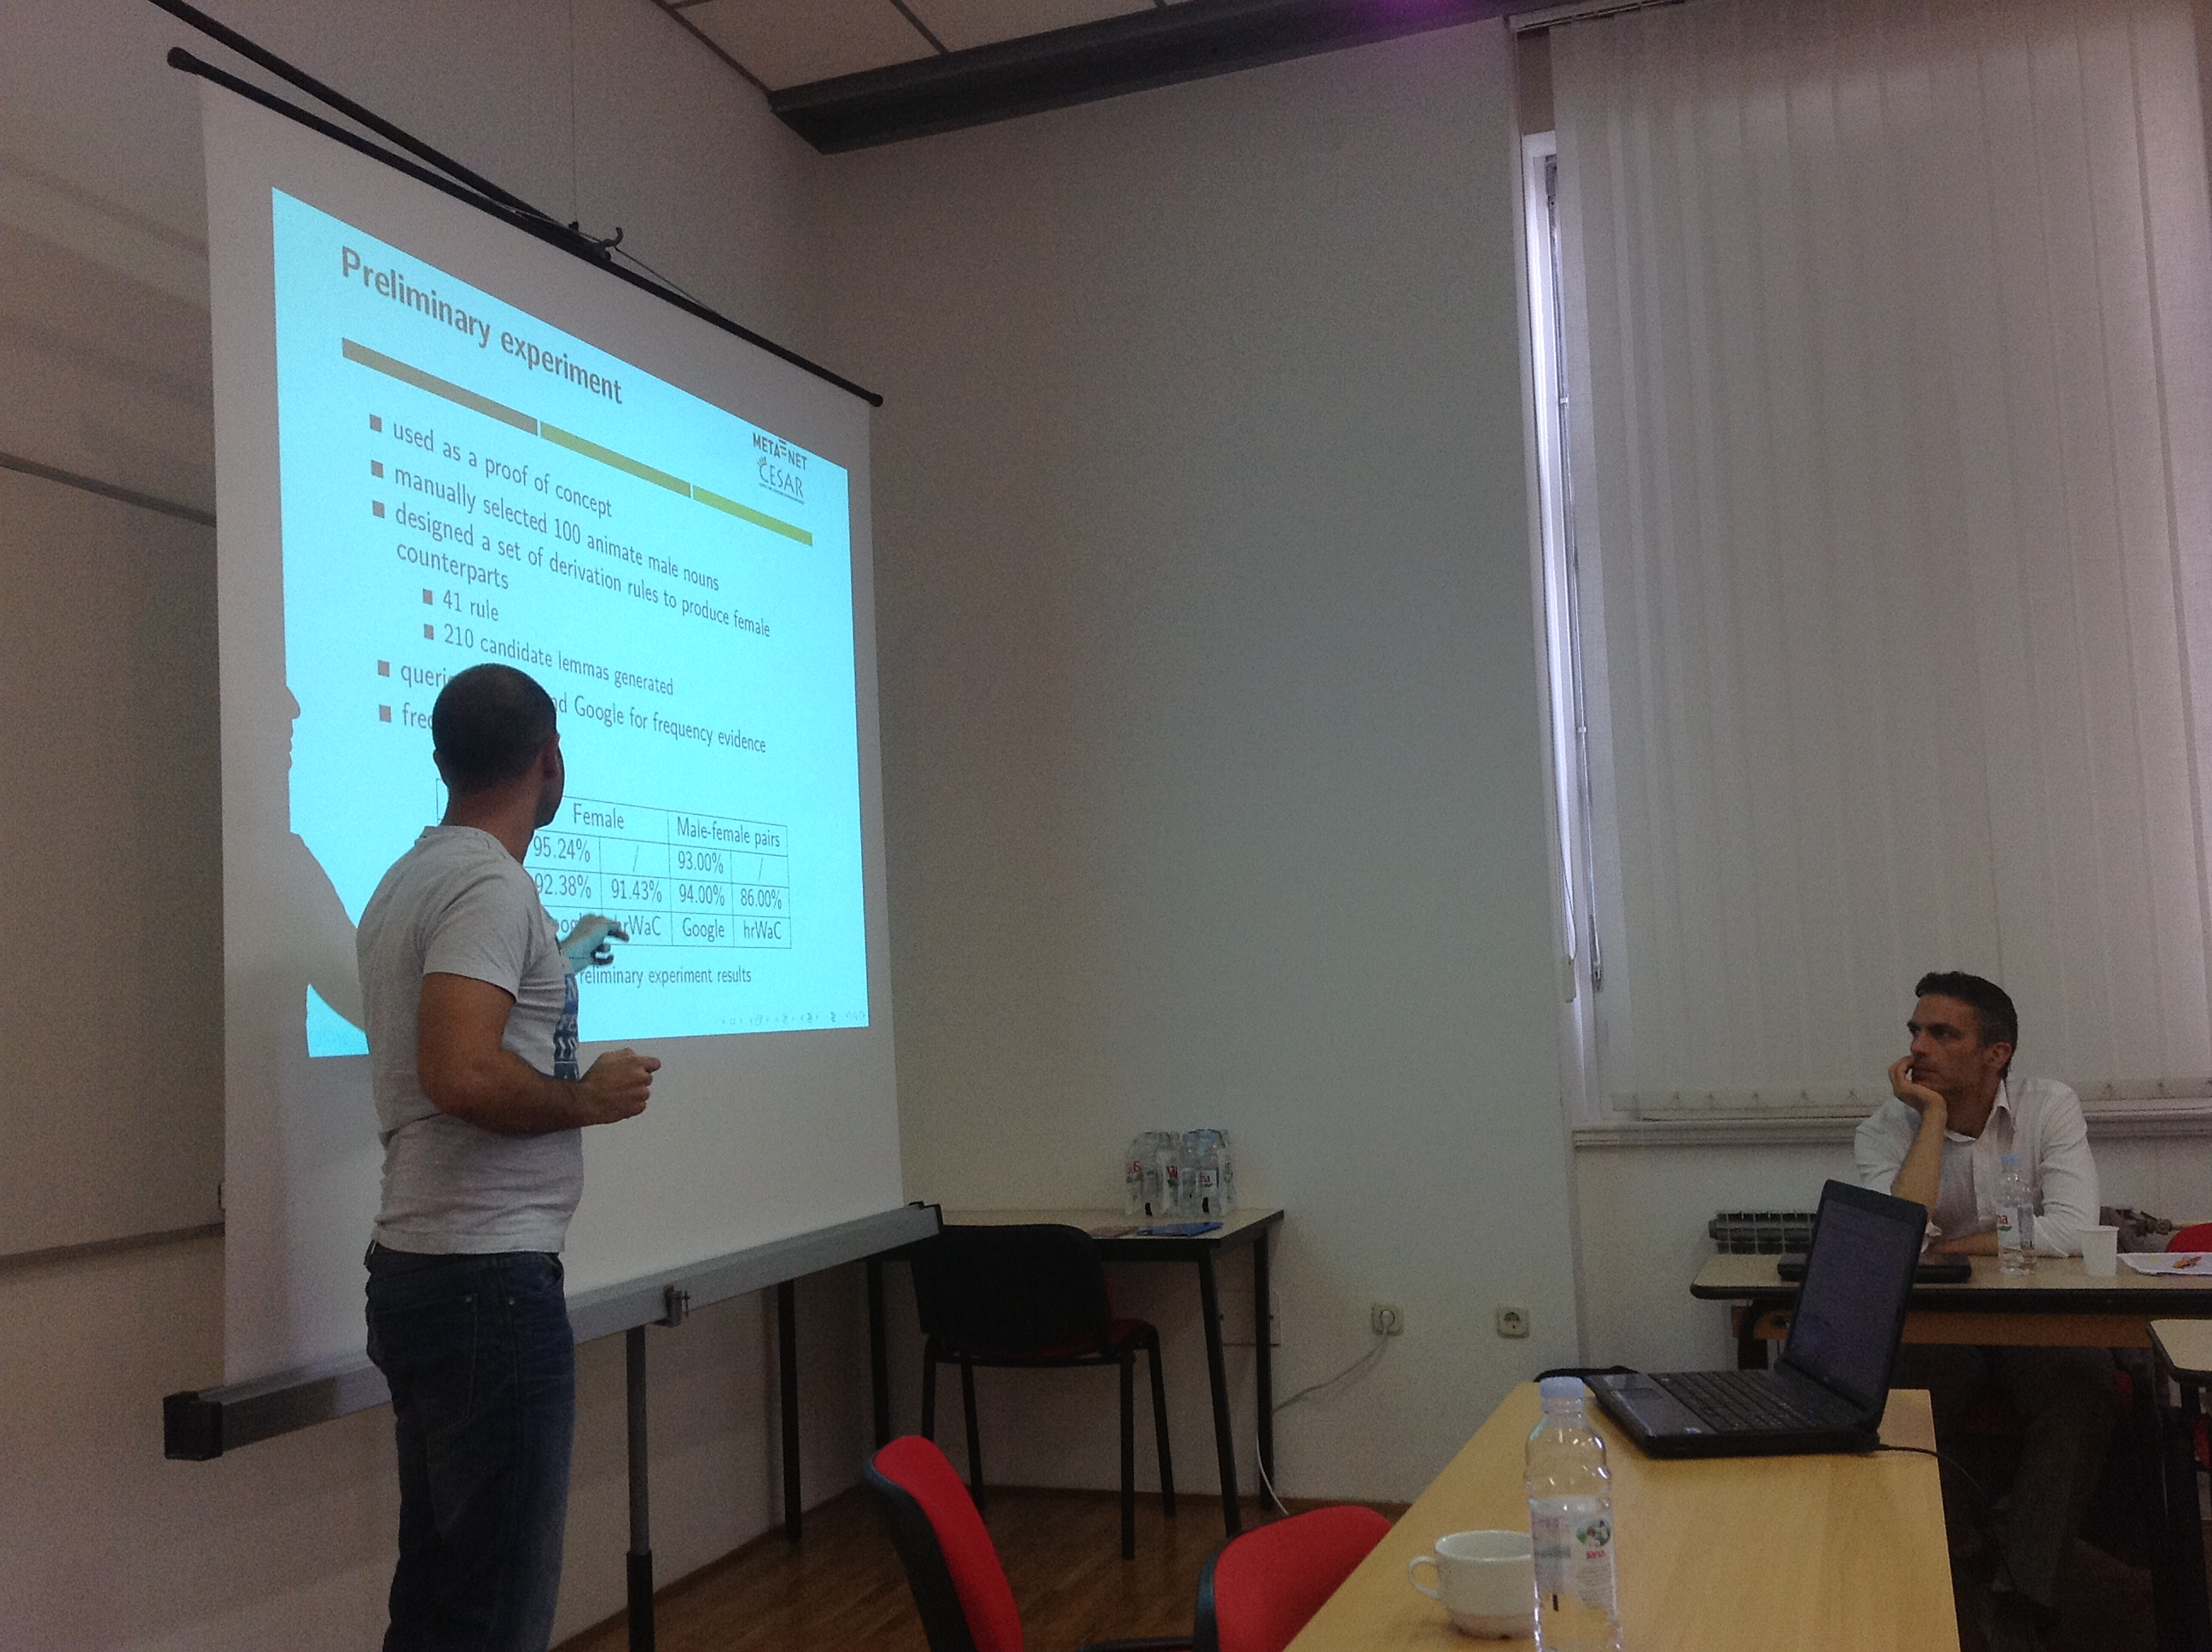 Željko Agić presenting a paper Automatic Enrichment of Croatian Morphological Lexicon Using Large Corpora and Web Search